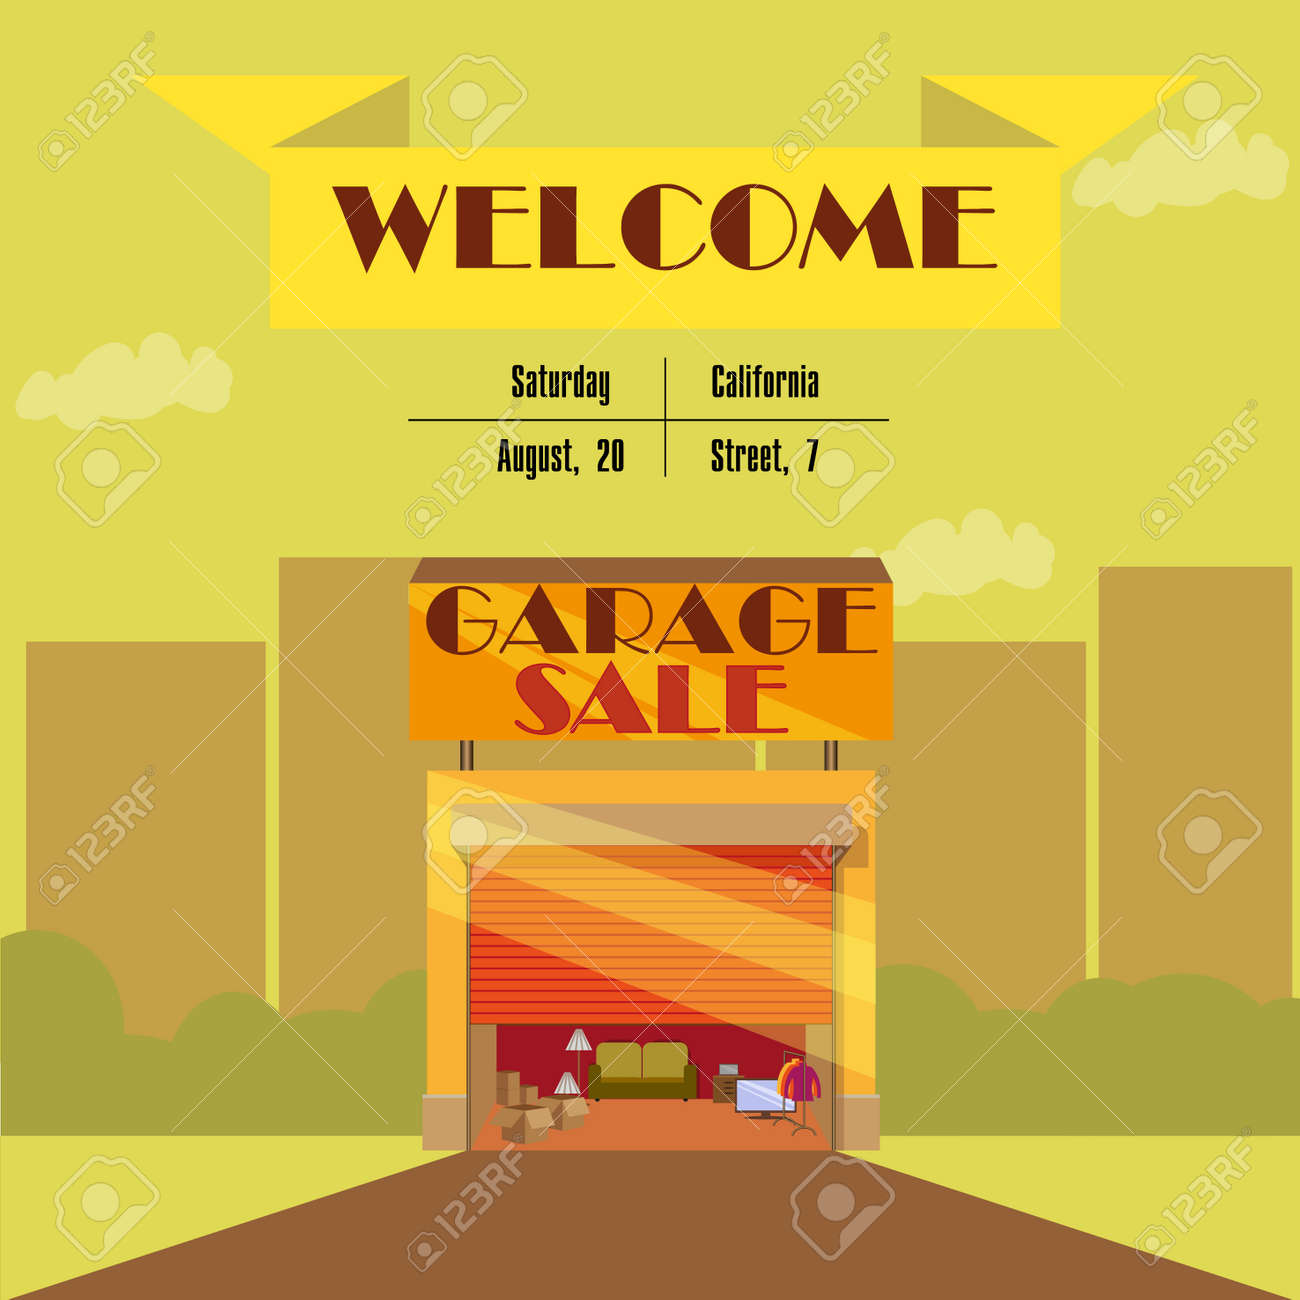 Garage Or Yard Sale With Signs, Box And Household Items, Vintage ...